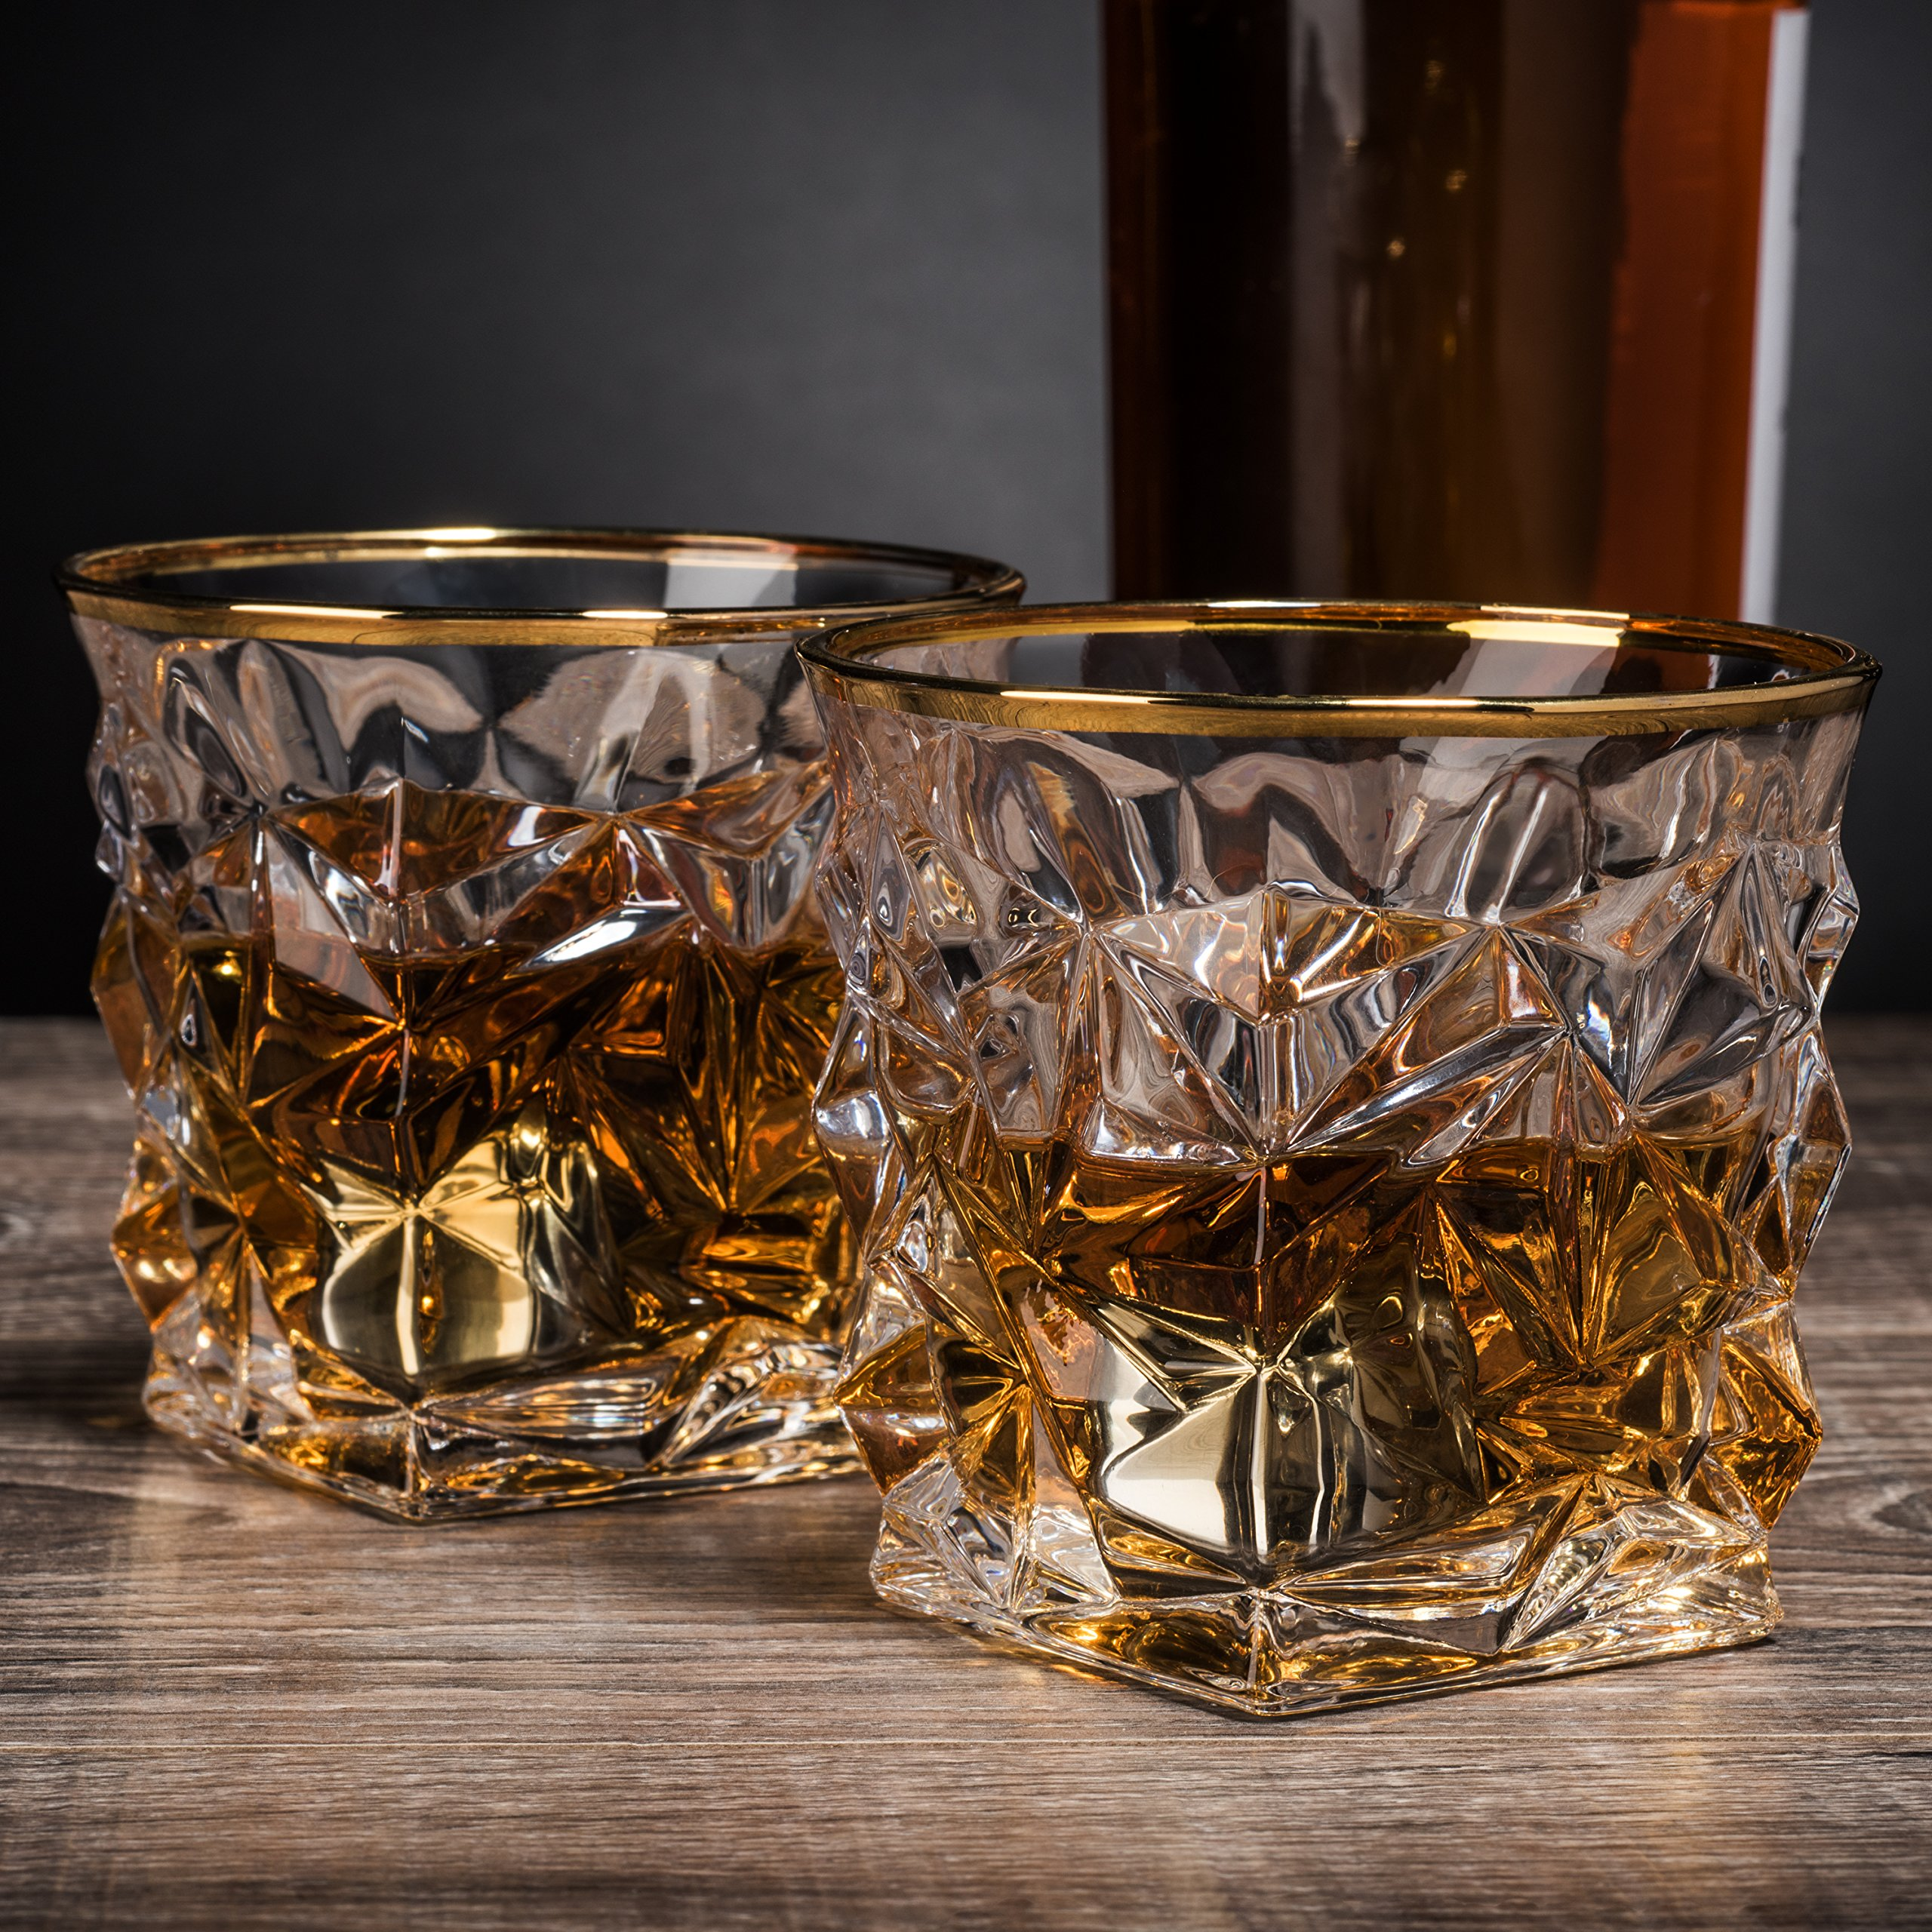 Posh Five Whiskey Glasses Set of 6 Diamond Scotch Glasses + 4 Stainless Steel Whiskey Stones by Posh Five Trading Co (Image #2)